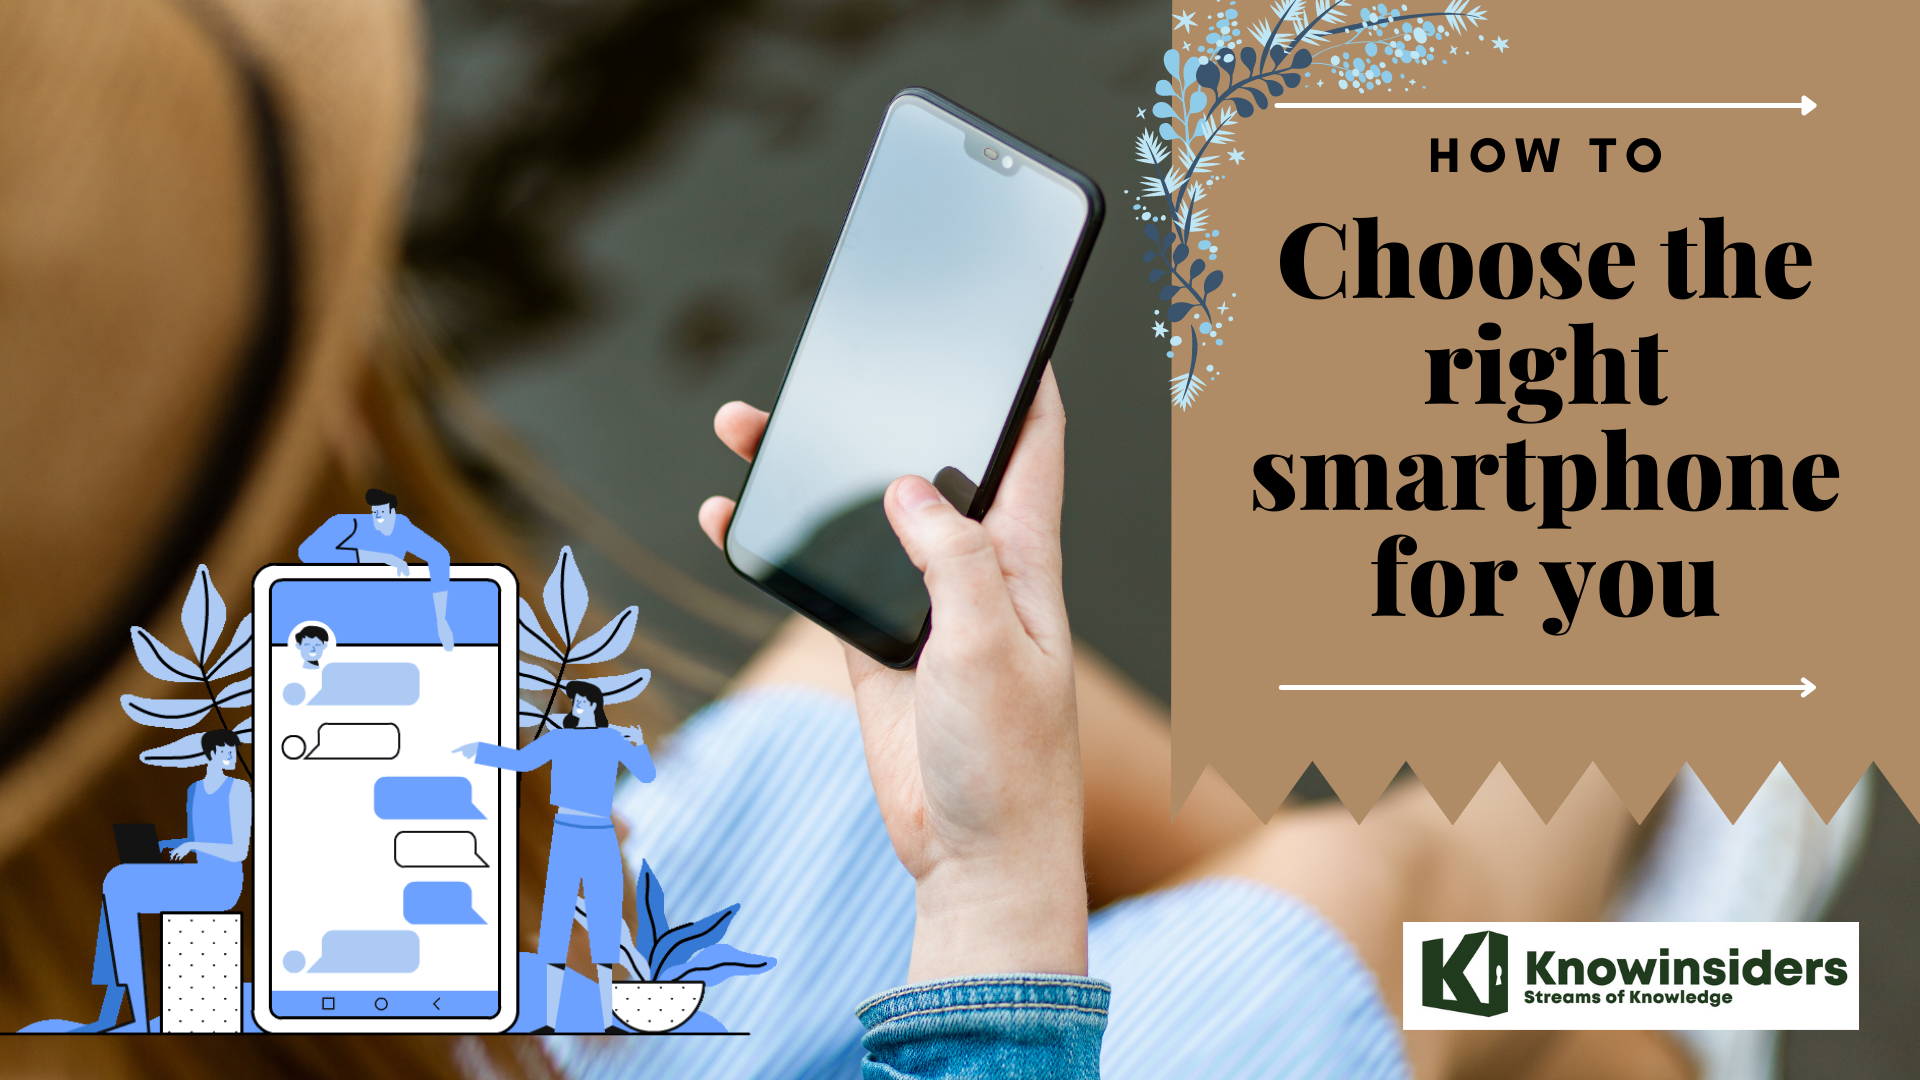 How To Choose The Right Smartphone: 7 Useful Tips